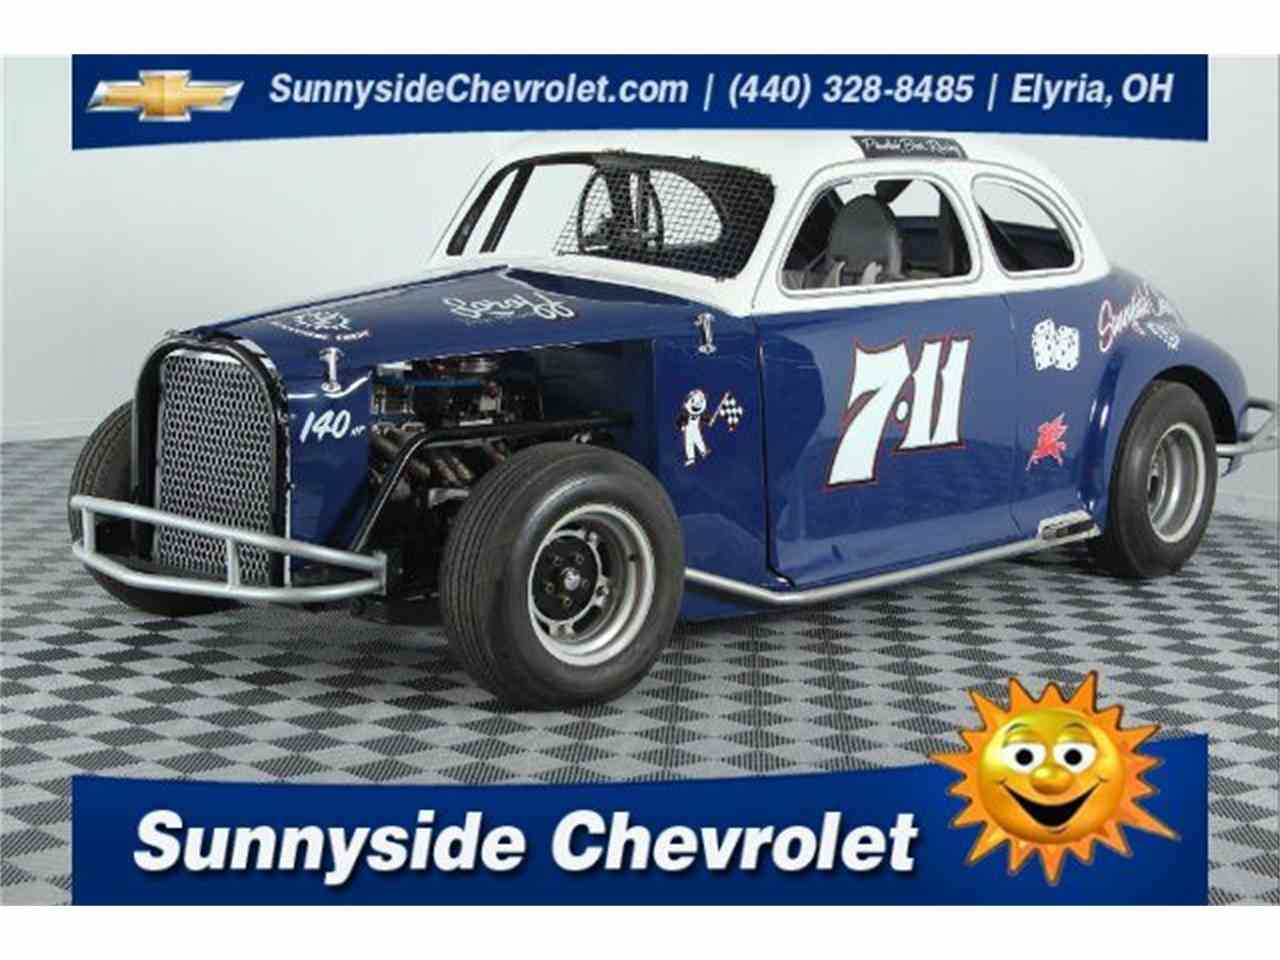 Large Picture of '42 Race Car located in Elyria Ohio - $7,900.00 Offered by Sunnyside Chevrolet - K99A